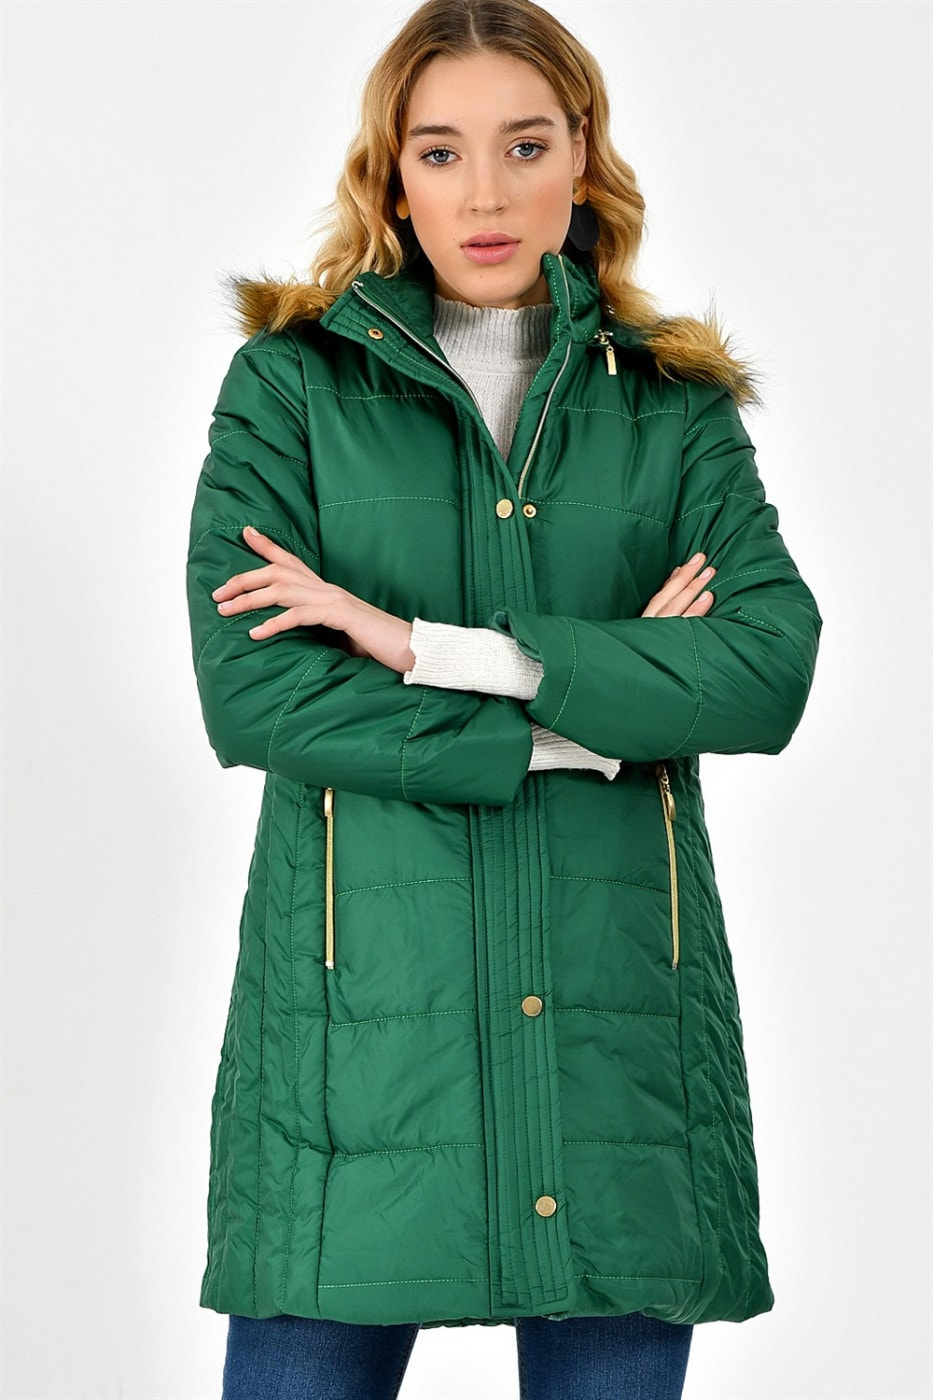 Z6434 DEWBERRY WOMEN'S COAT-ON GREEN